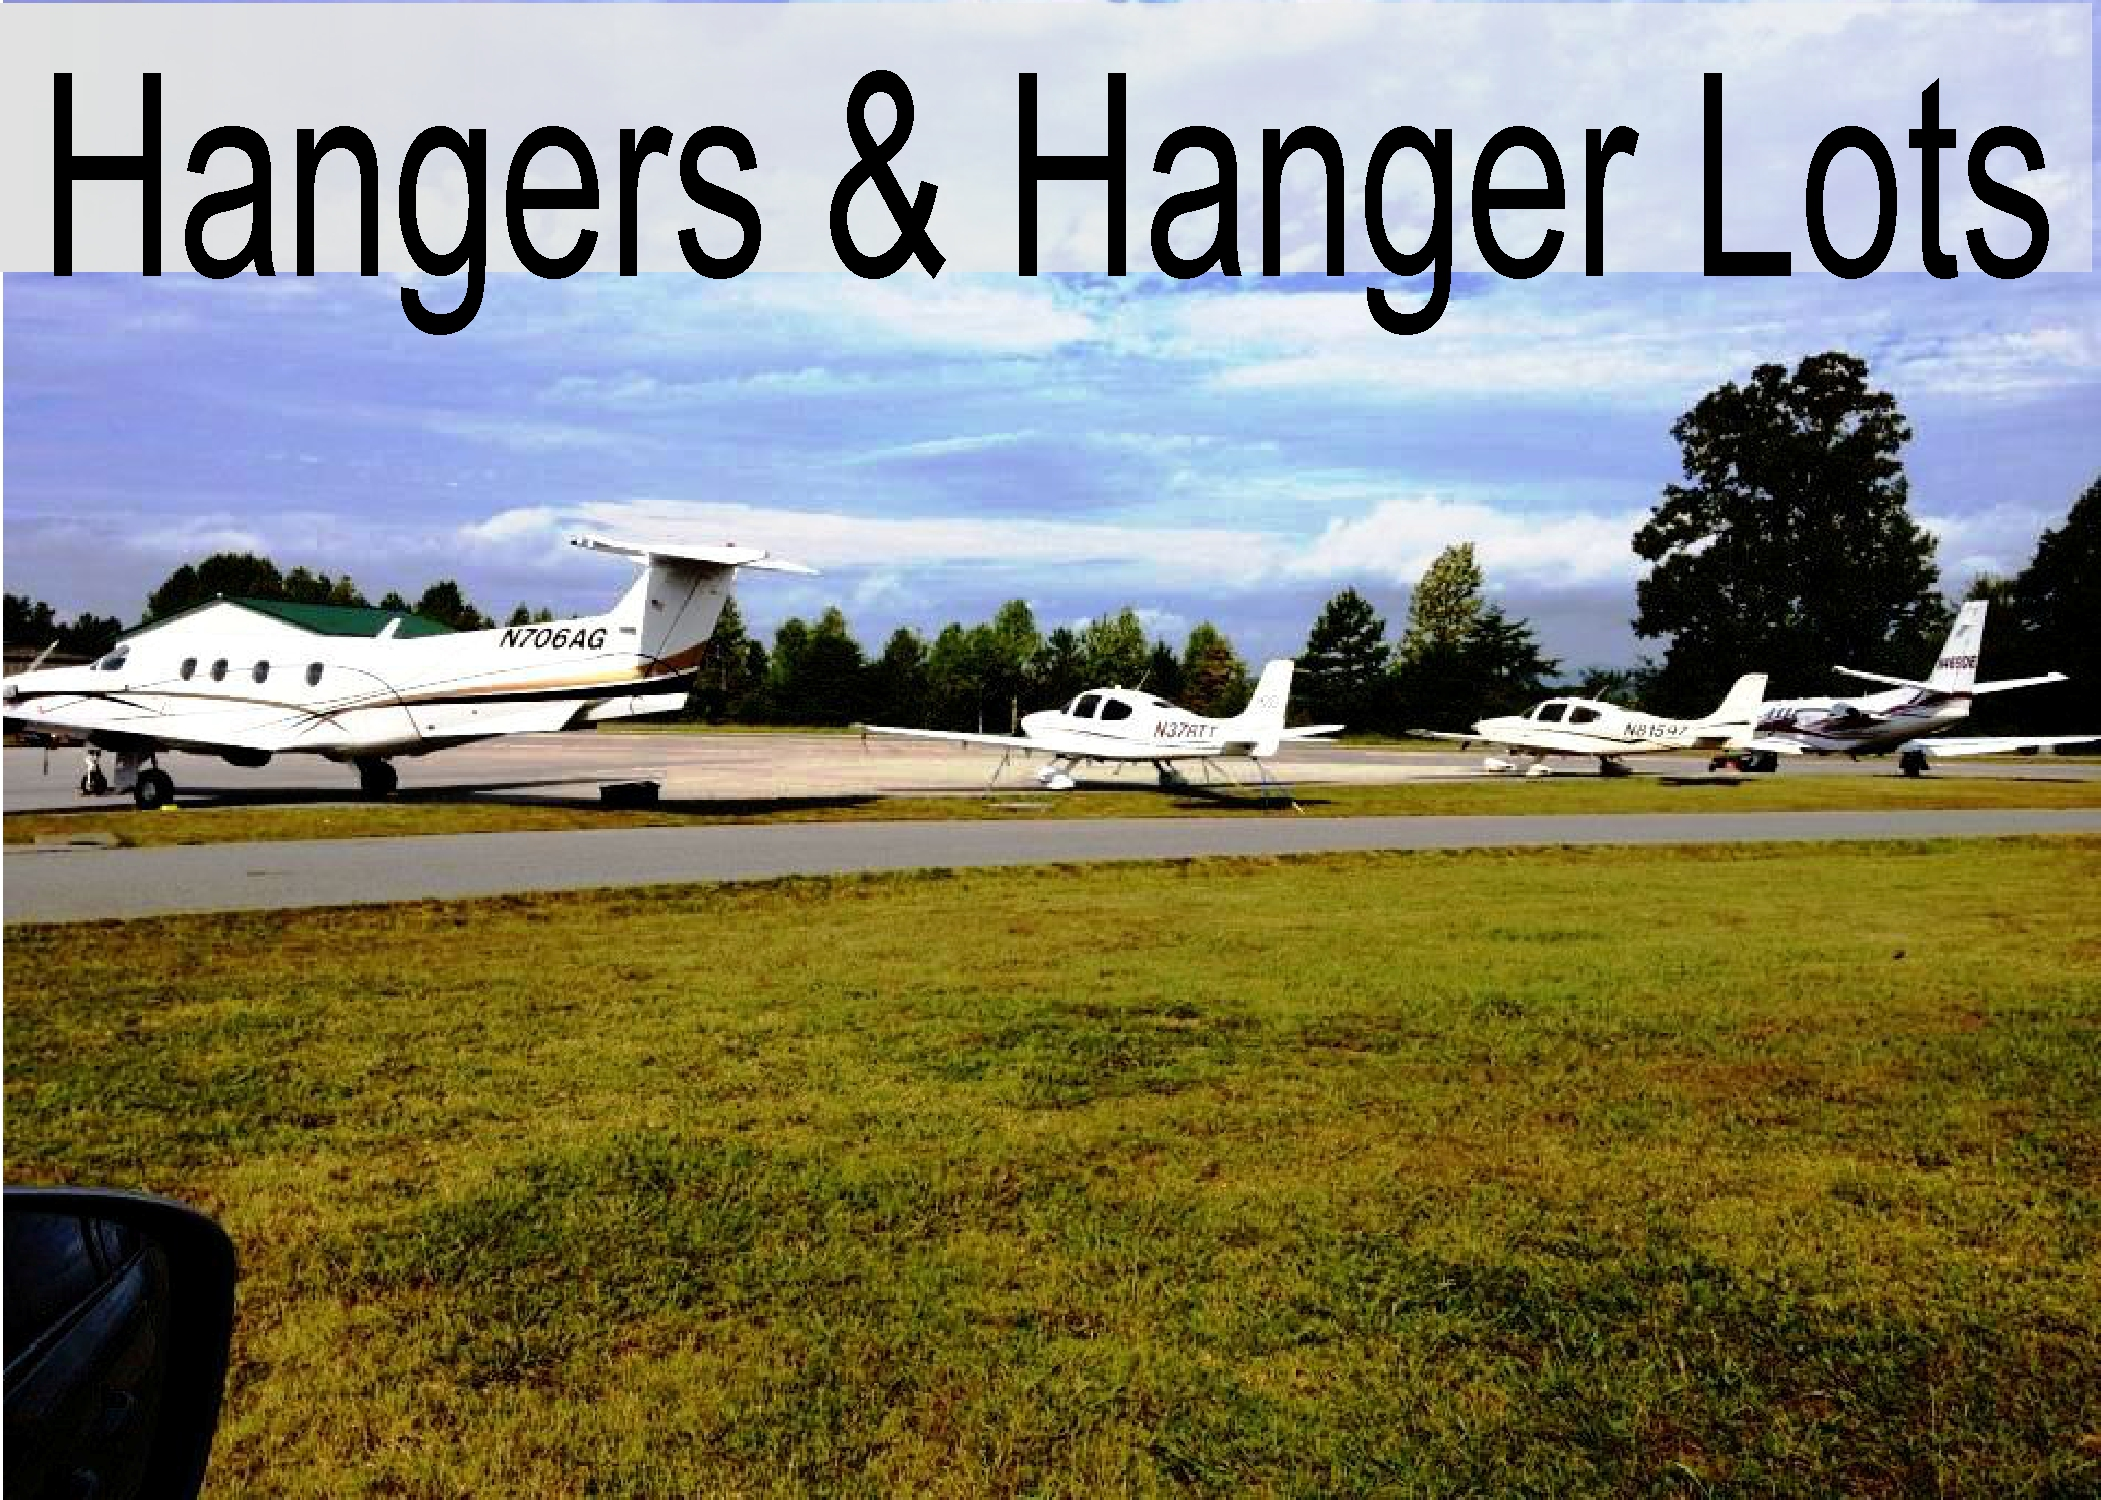 hangers and lots.jpg